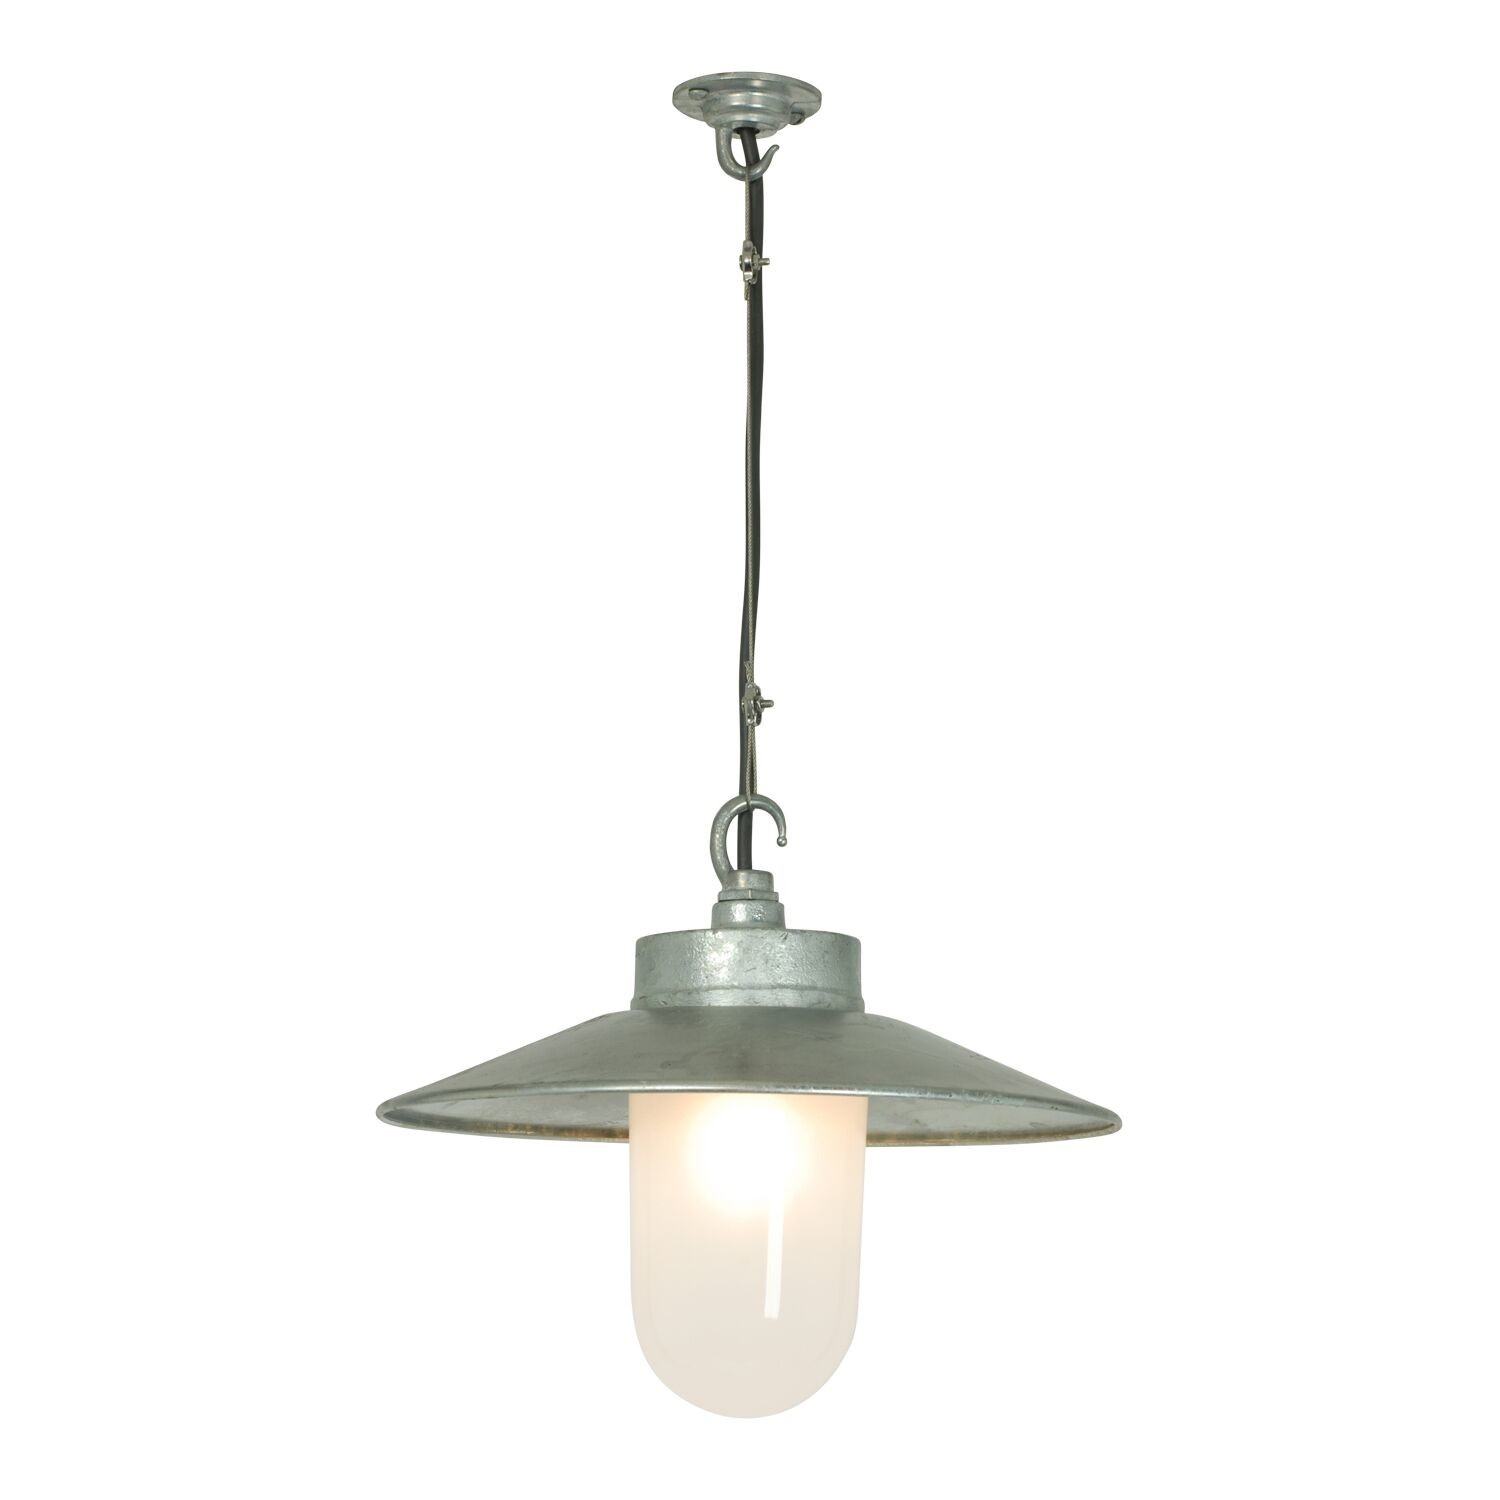 Well Glass Pendant Light with Visor 7680 Galvanised silver, Frosted glass, IP20